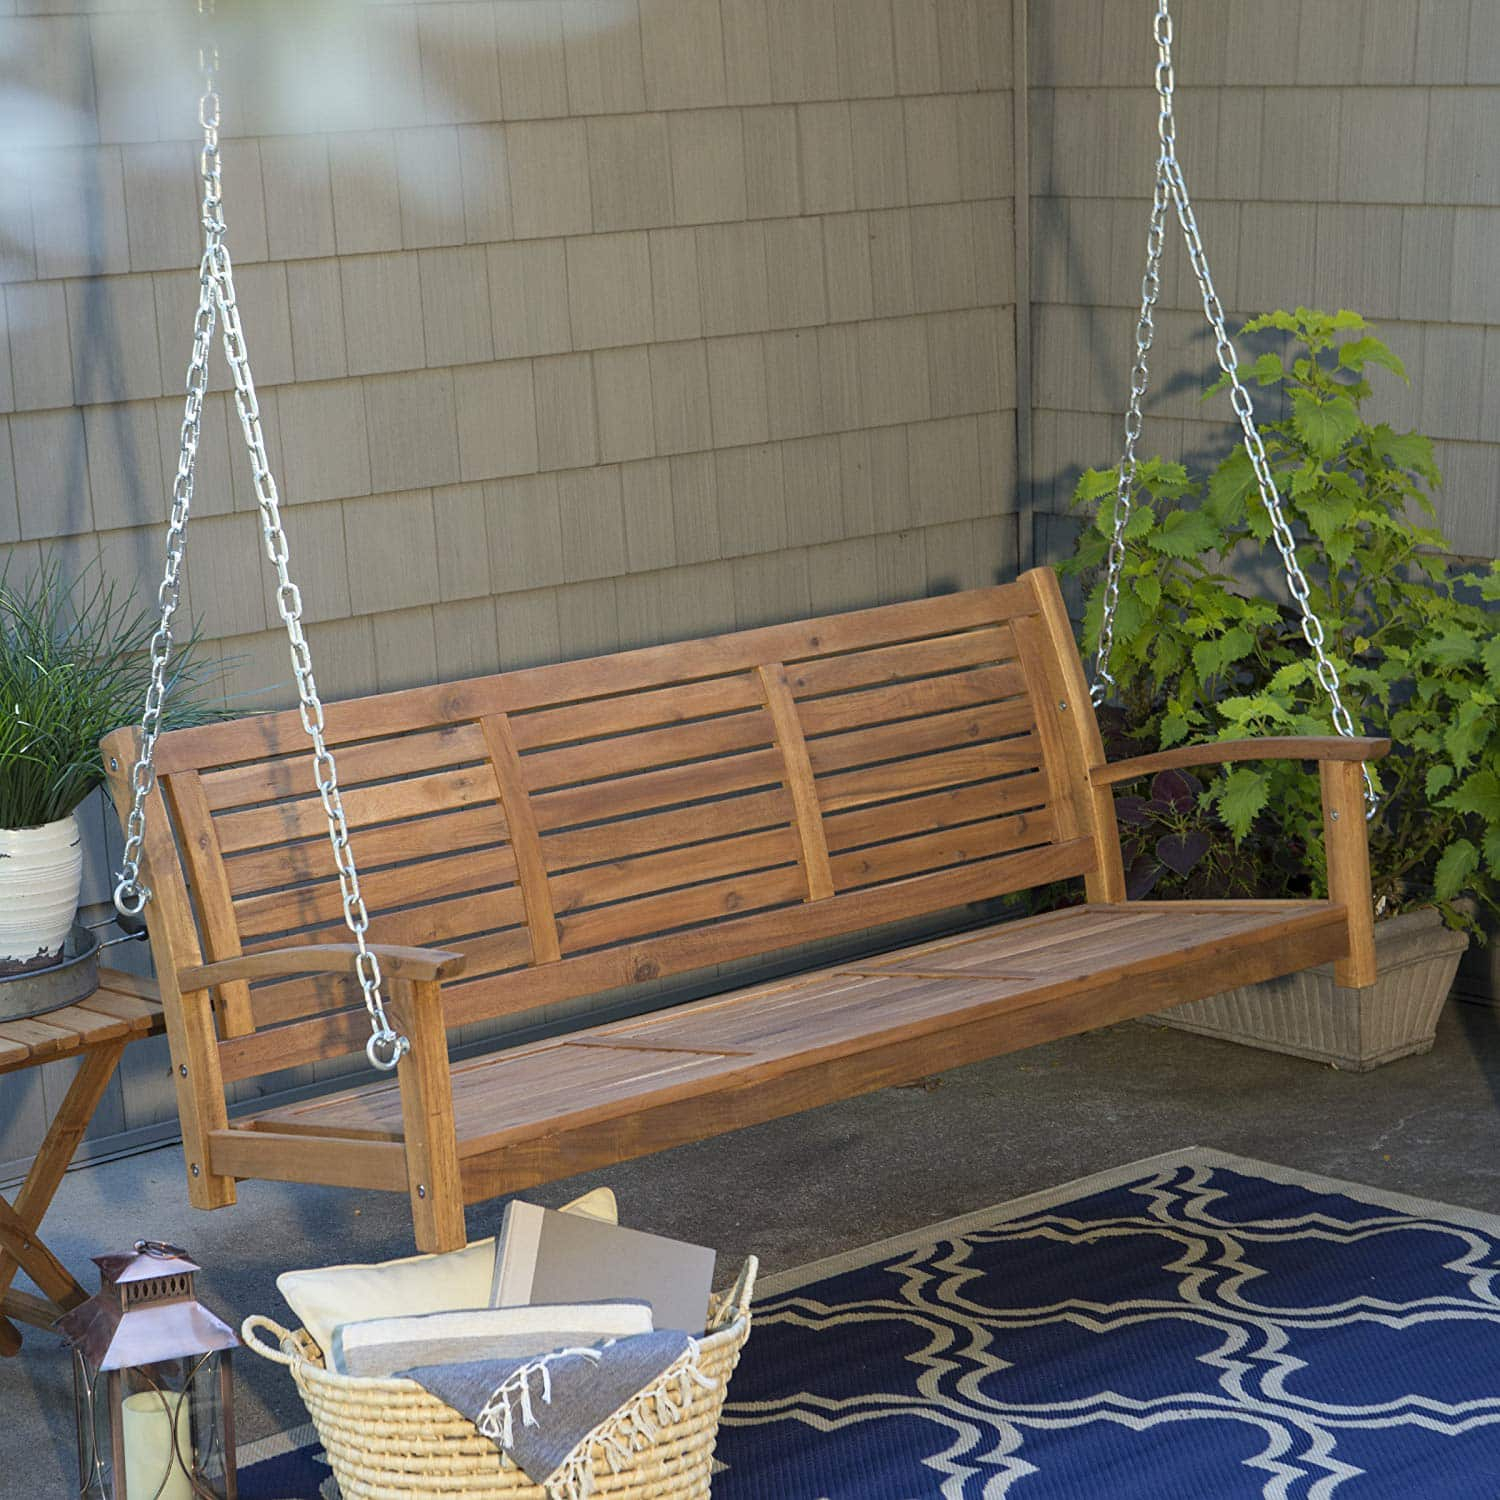 Top 10 Best Porch Swings In 2020 Reviews | Buyer's Guide Regarding Classic Porch Swings (Image 22 of 25)